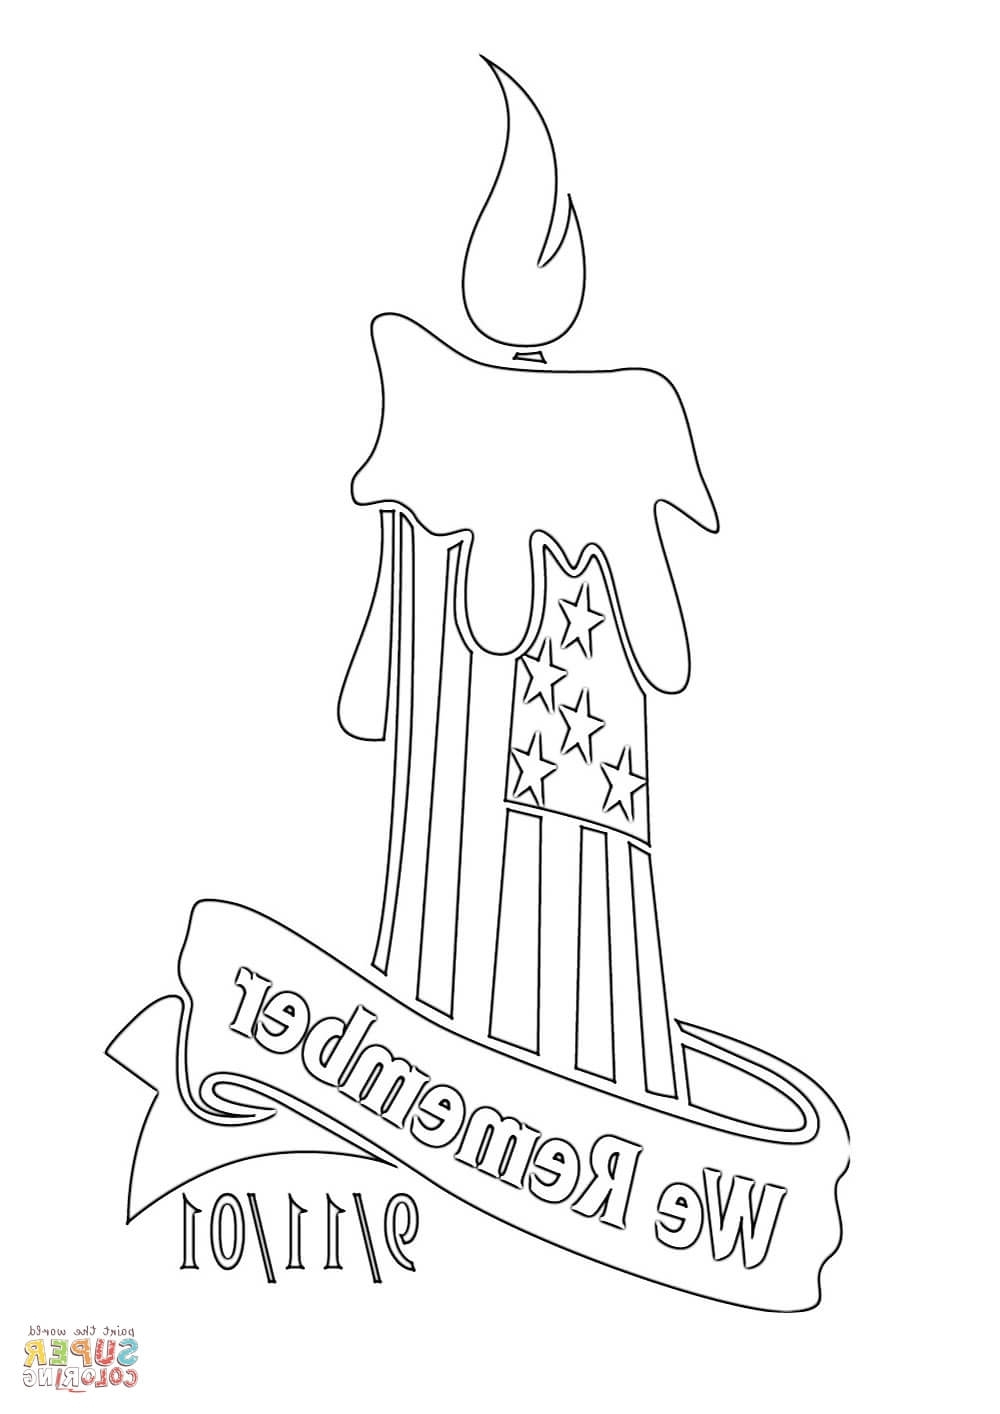 coloring pages 911 remember 911 coloring page free printable coloring pages coloring 911 pages